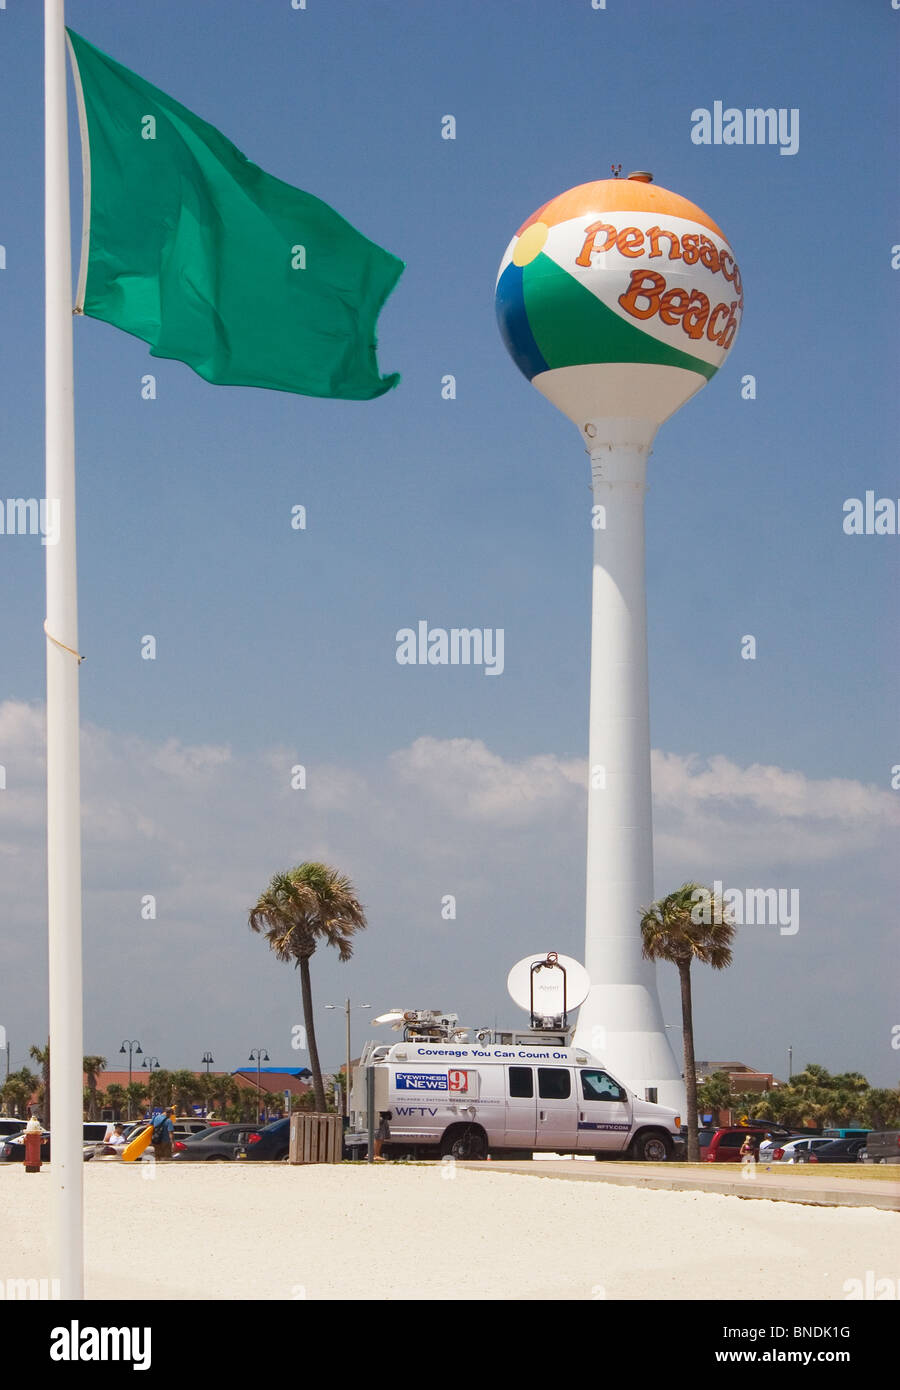 News truck parked at Pensacola Beach, Florida during the third month of the BP oil spill.  July, 2010. - Stock Image